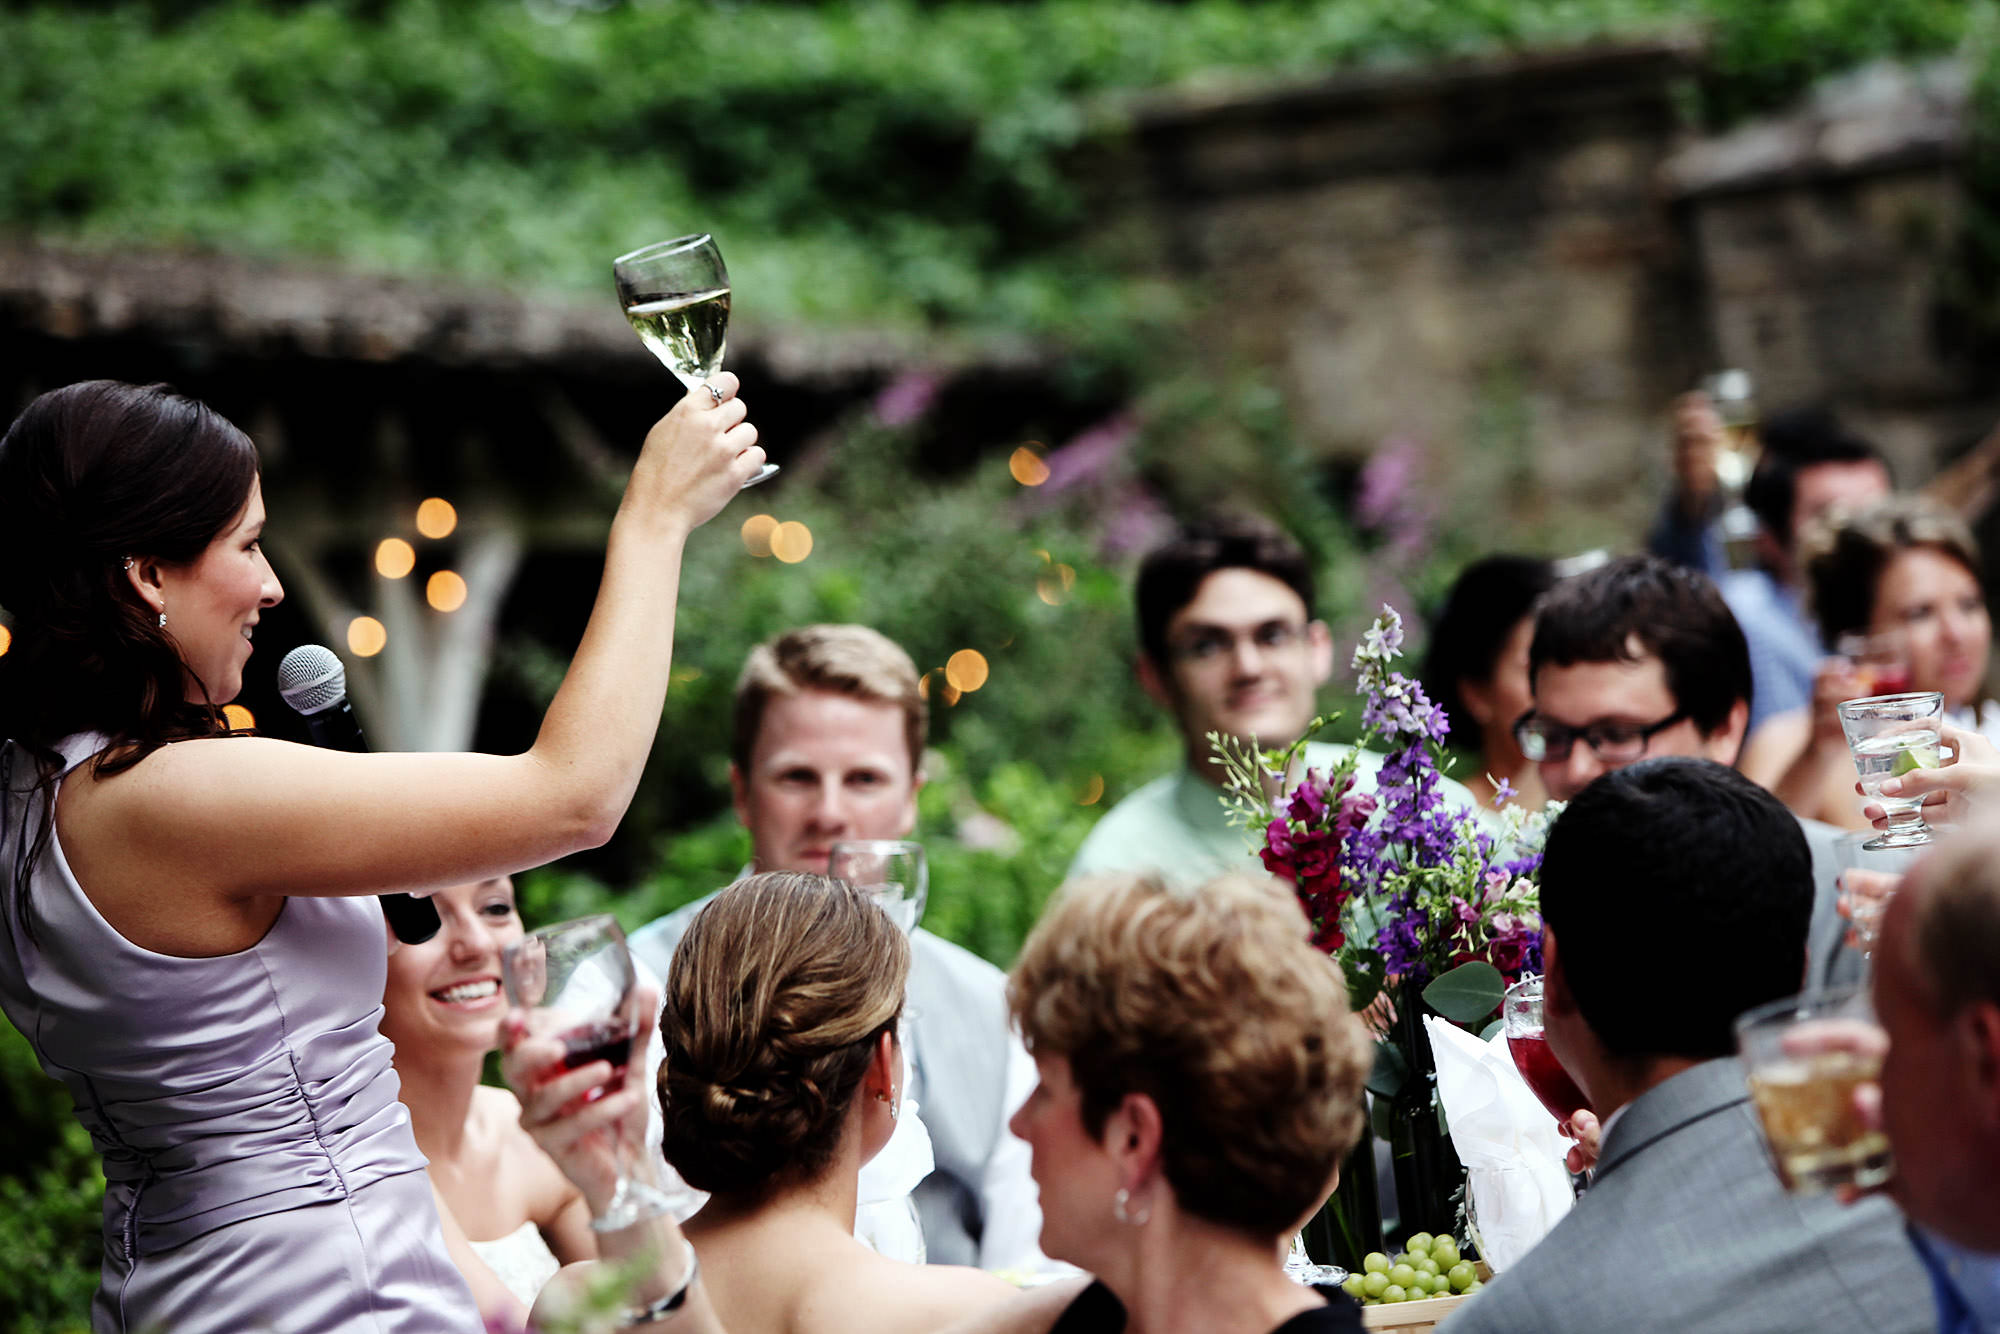 Cloisters Castle Wedding  I  Toasts are given during the wedding reception.